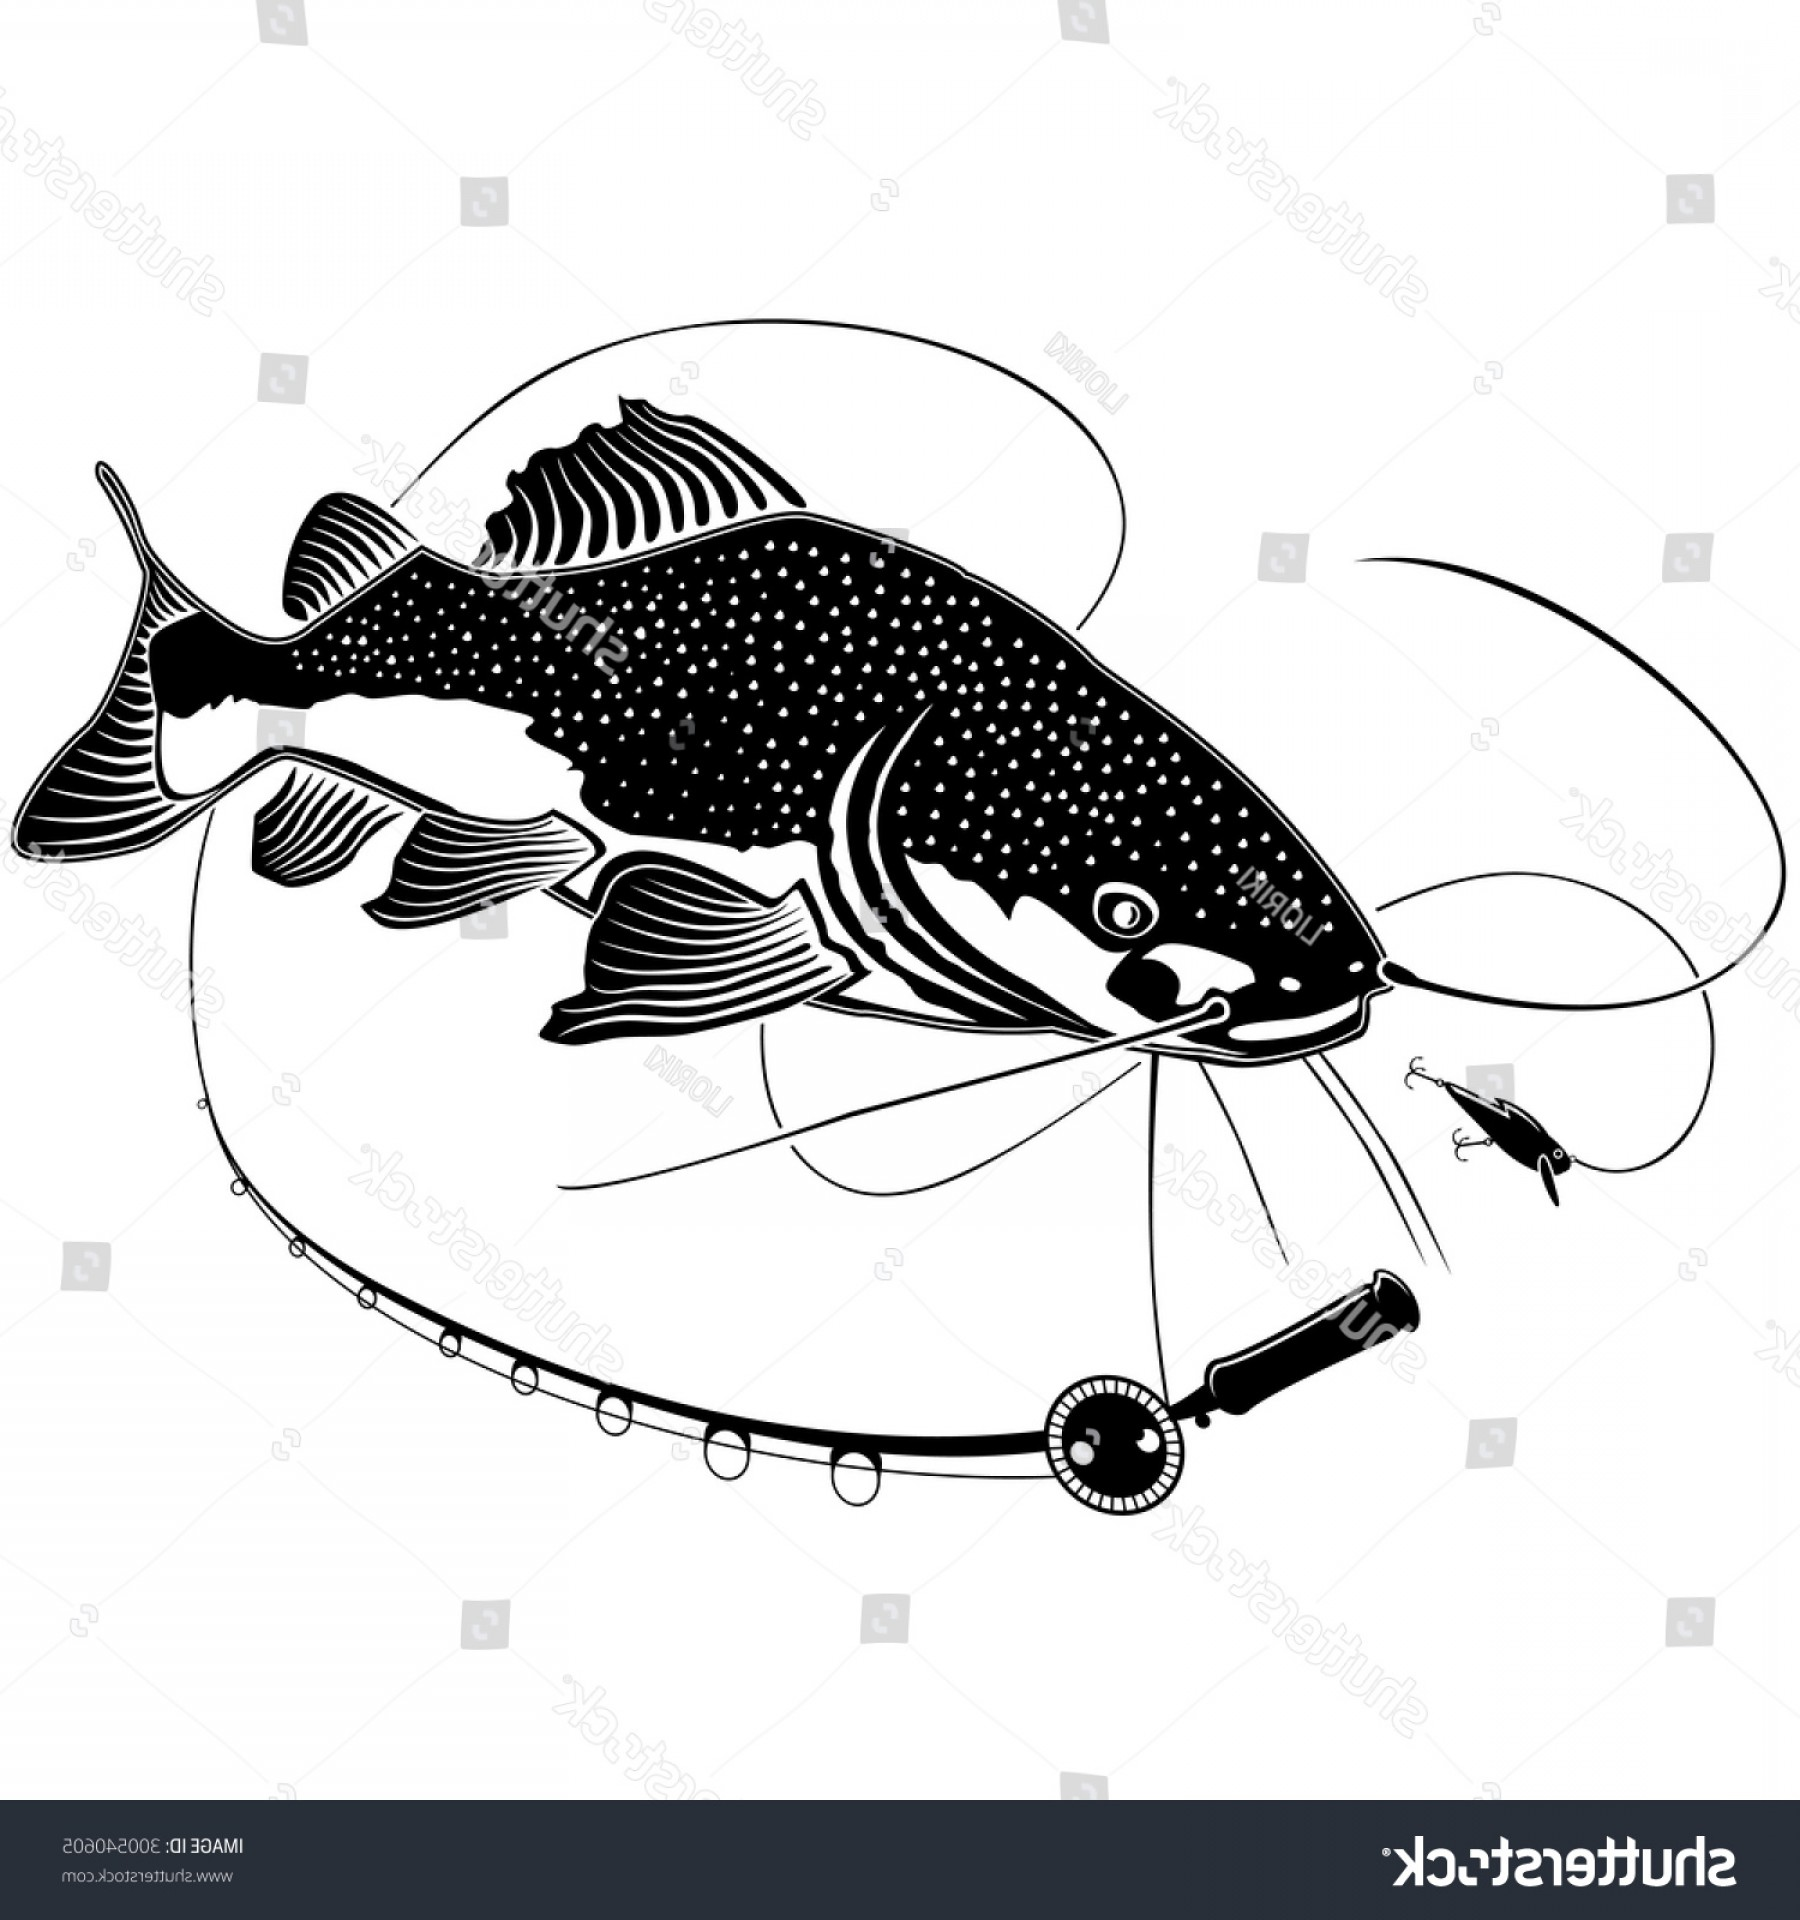 Catfish Vector Logo: Shutterstock Vector Illustration Of Catfish Vector